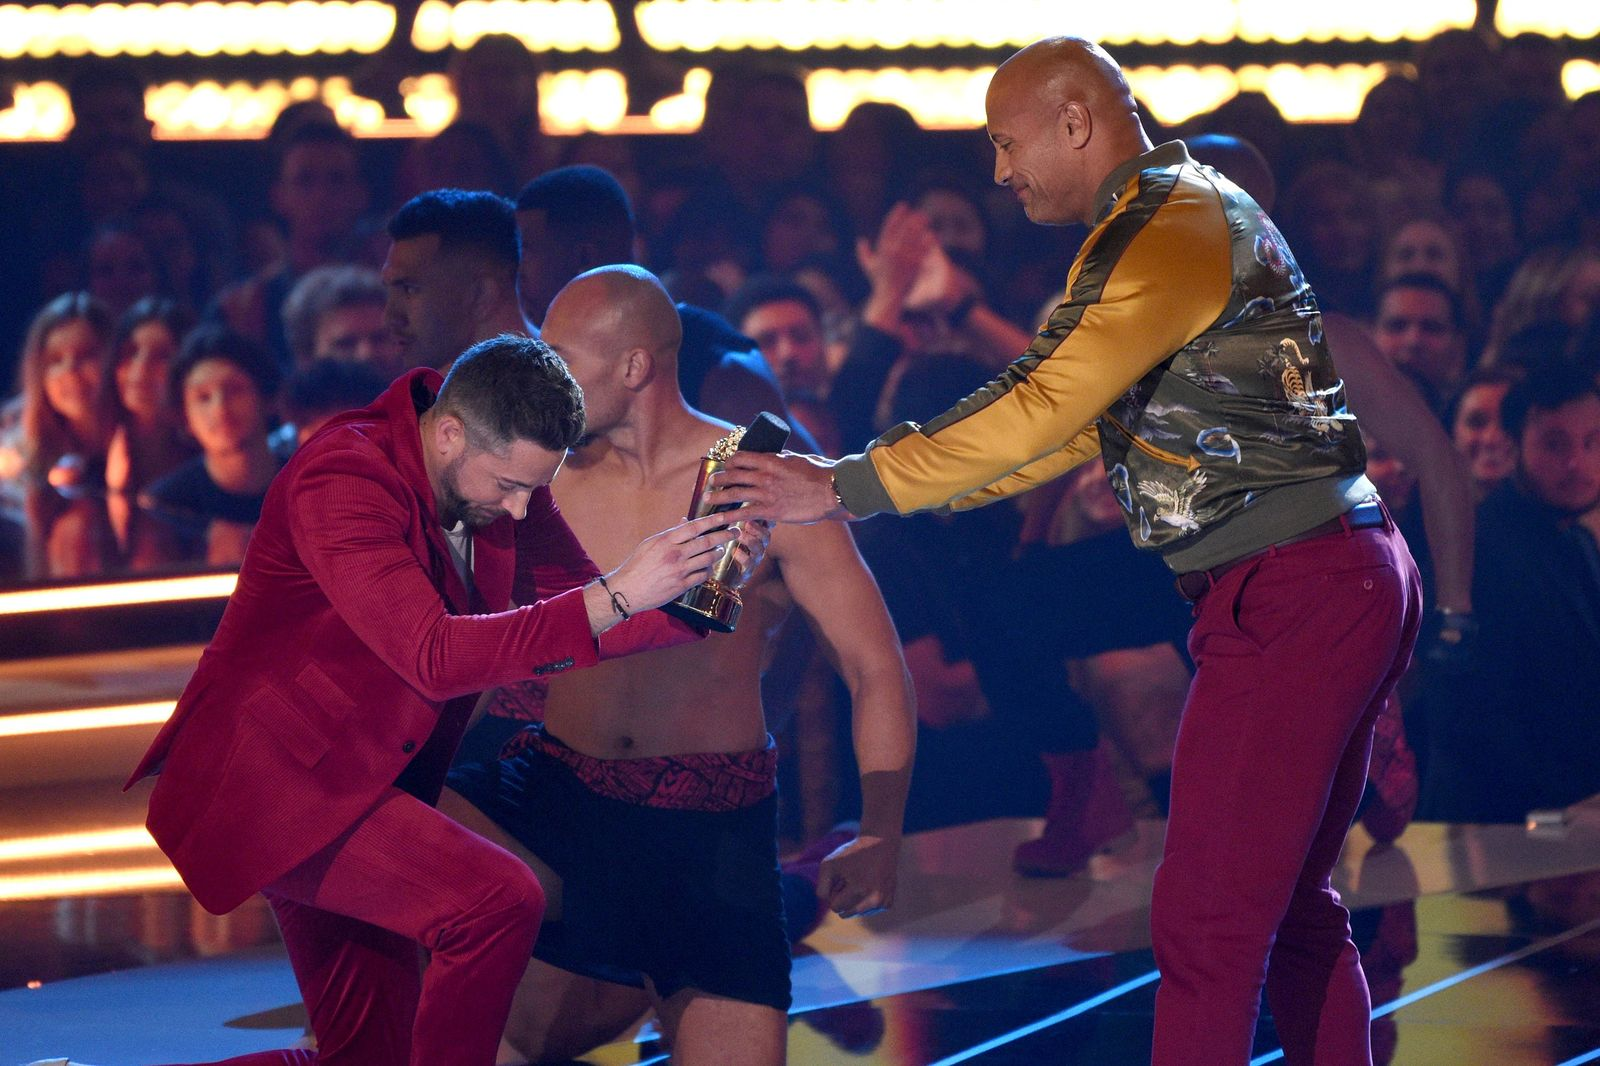 Zachary Levi bows as he presents the generation award to Dwayne Johnson, also known as The Rock, at the MTV Movie and TV Awards on Saturday, June 15, 2019, at the Barker Hangar in Santa Monica, Calif. (Photo by Chris Pizzello/Invision/AP)